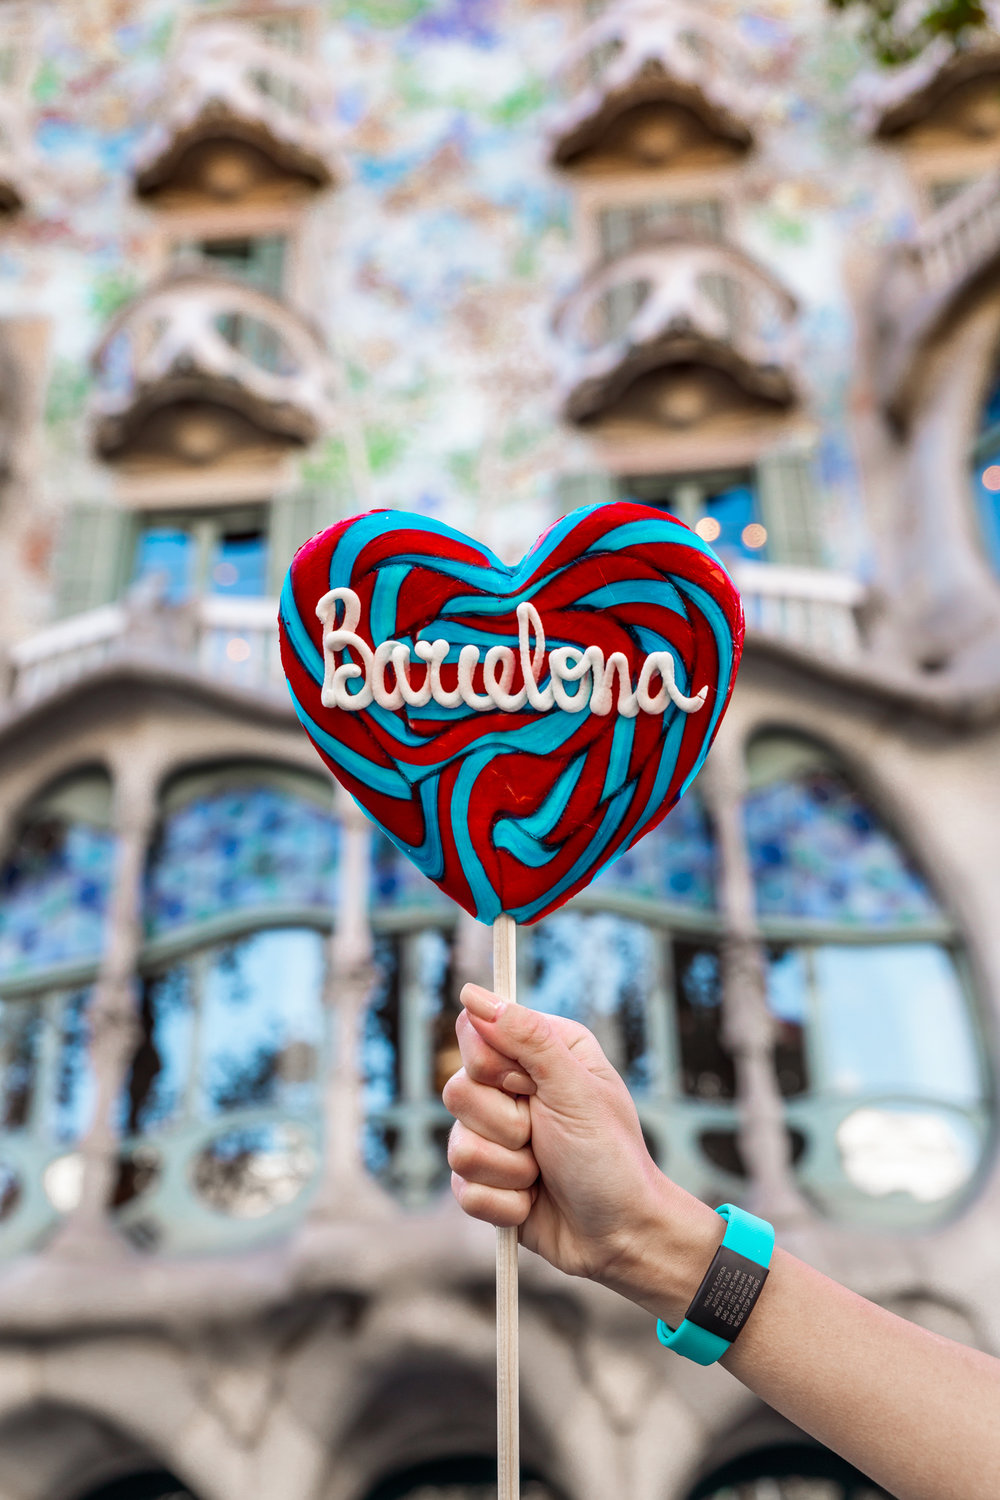 The 25 Most Instagrammable Spots in Barcelona (With Addresses!) // www.readysetjetset.net #readysetjetset #barcelona #spain